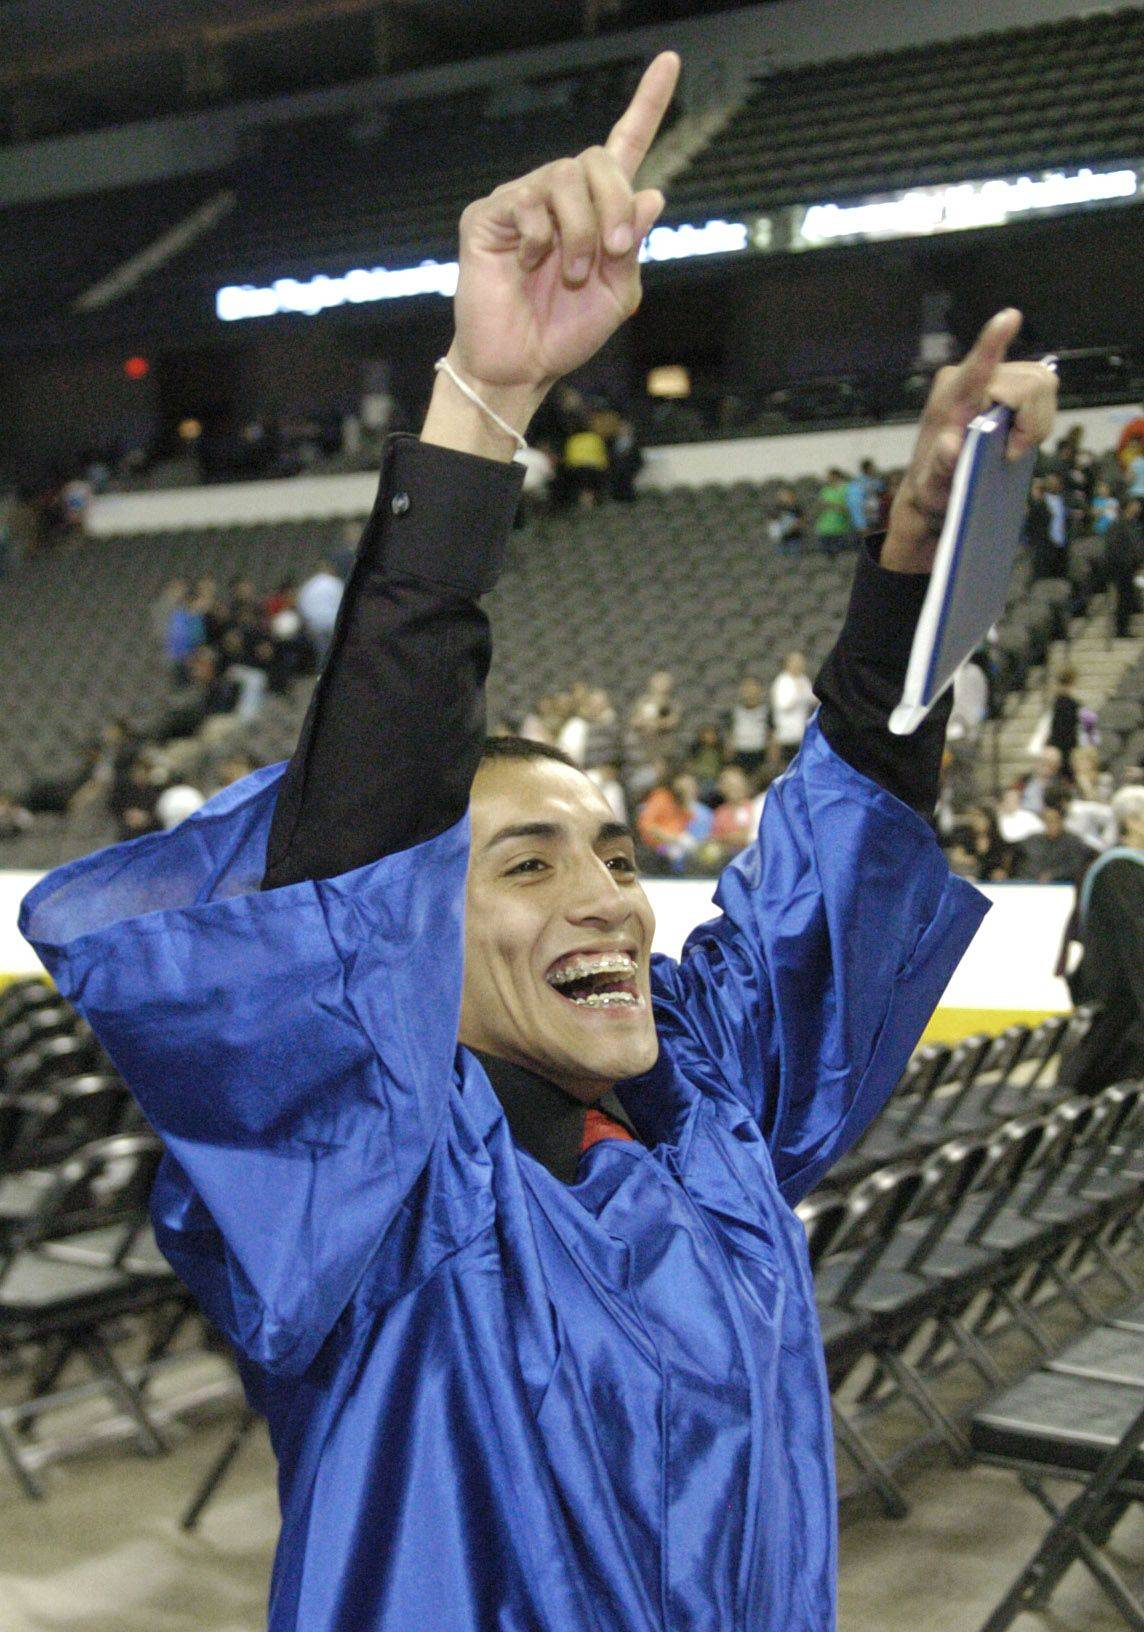 Edgar Zamora cheers to his family as he exits the floor after the conclusion of Larkin High School's commencement ceremony at the Sears Centre in Hoffman Estates on Saturday.